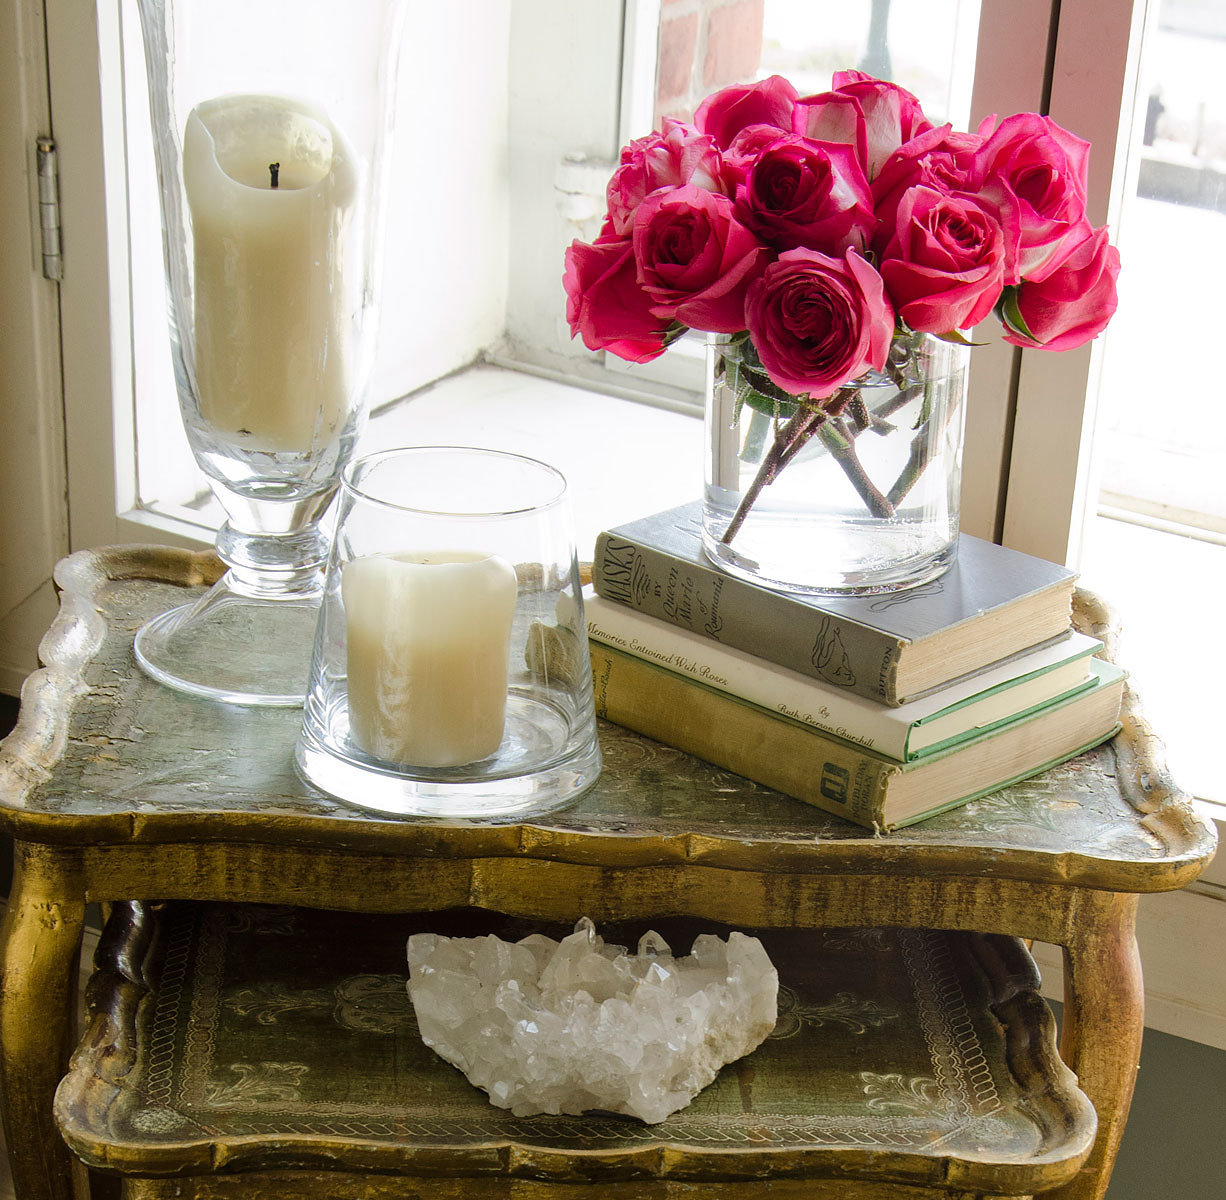 Erin Fetherston roses on table Tribeca home in Vogue